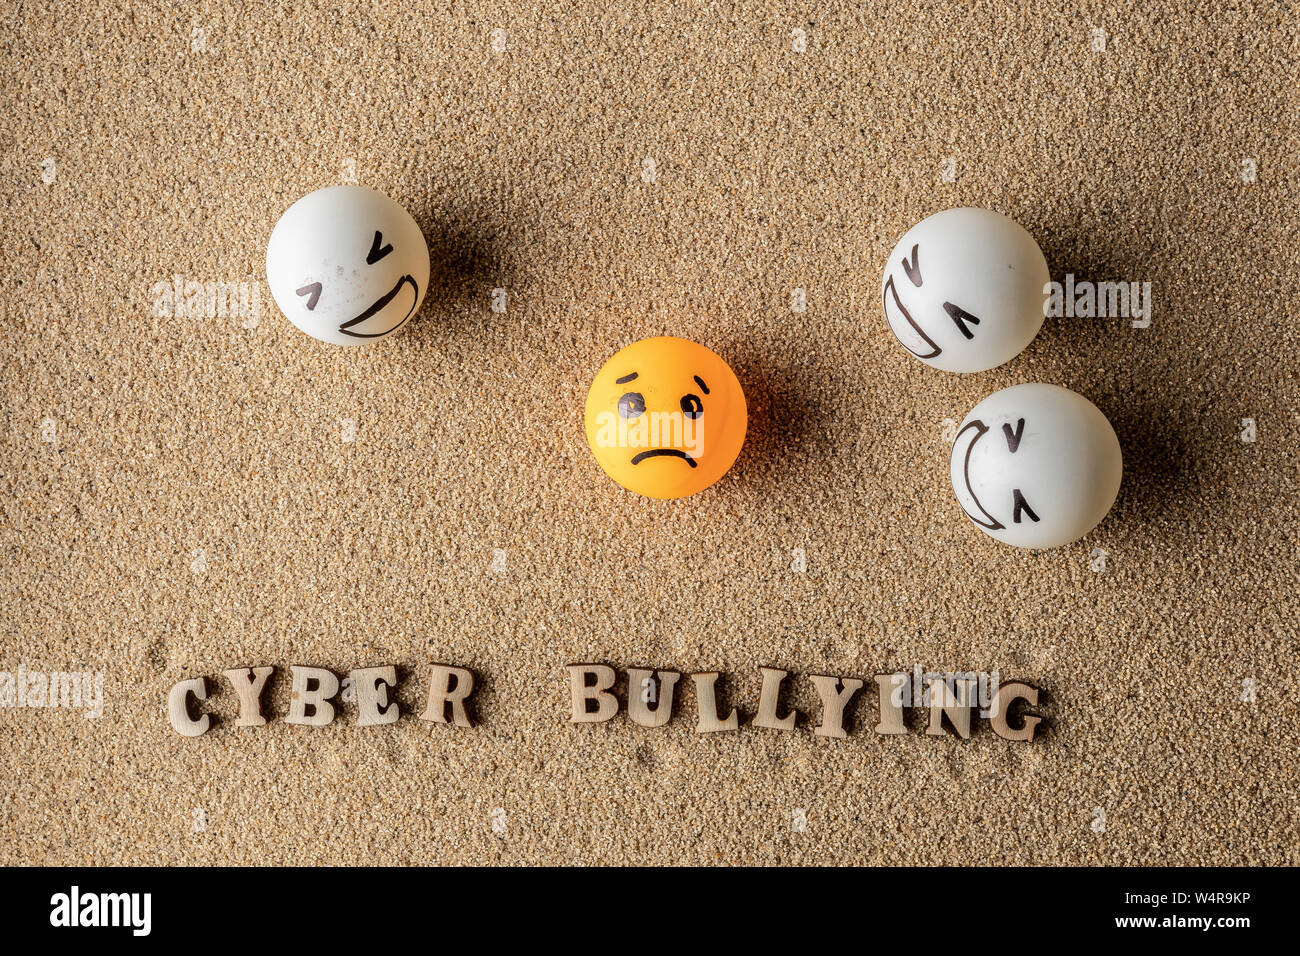 Cyber Bullying Stock Photos & Cyber Bullying Stock Images